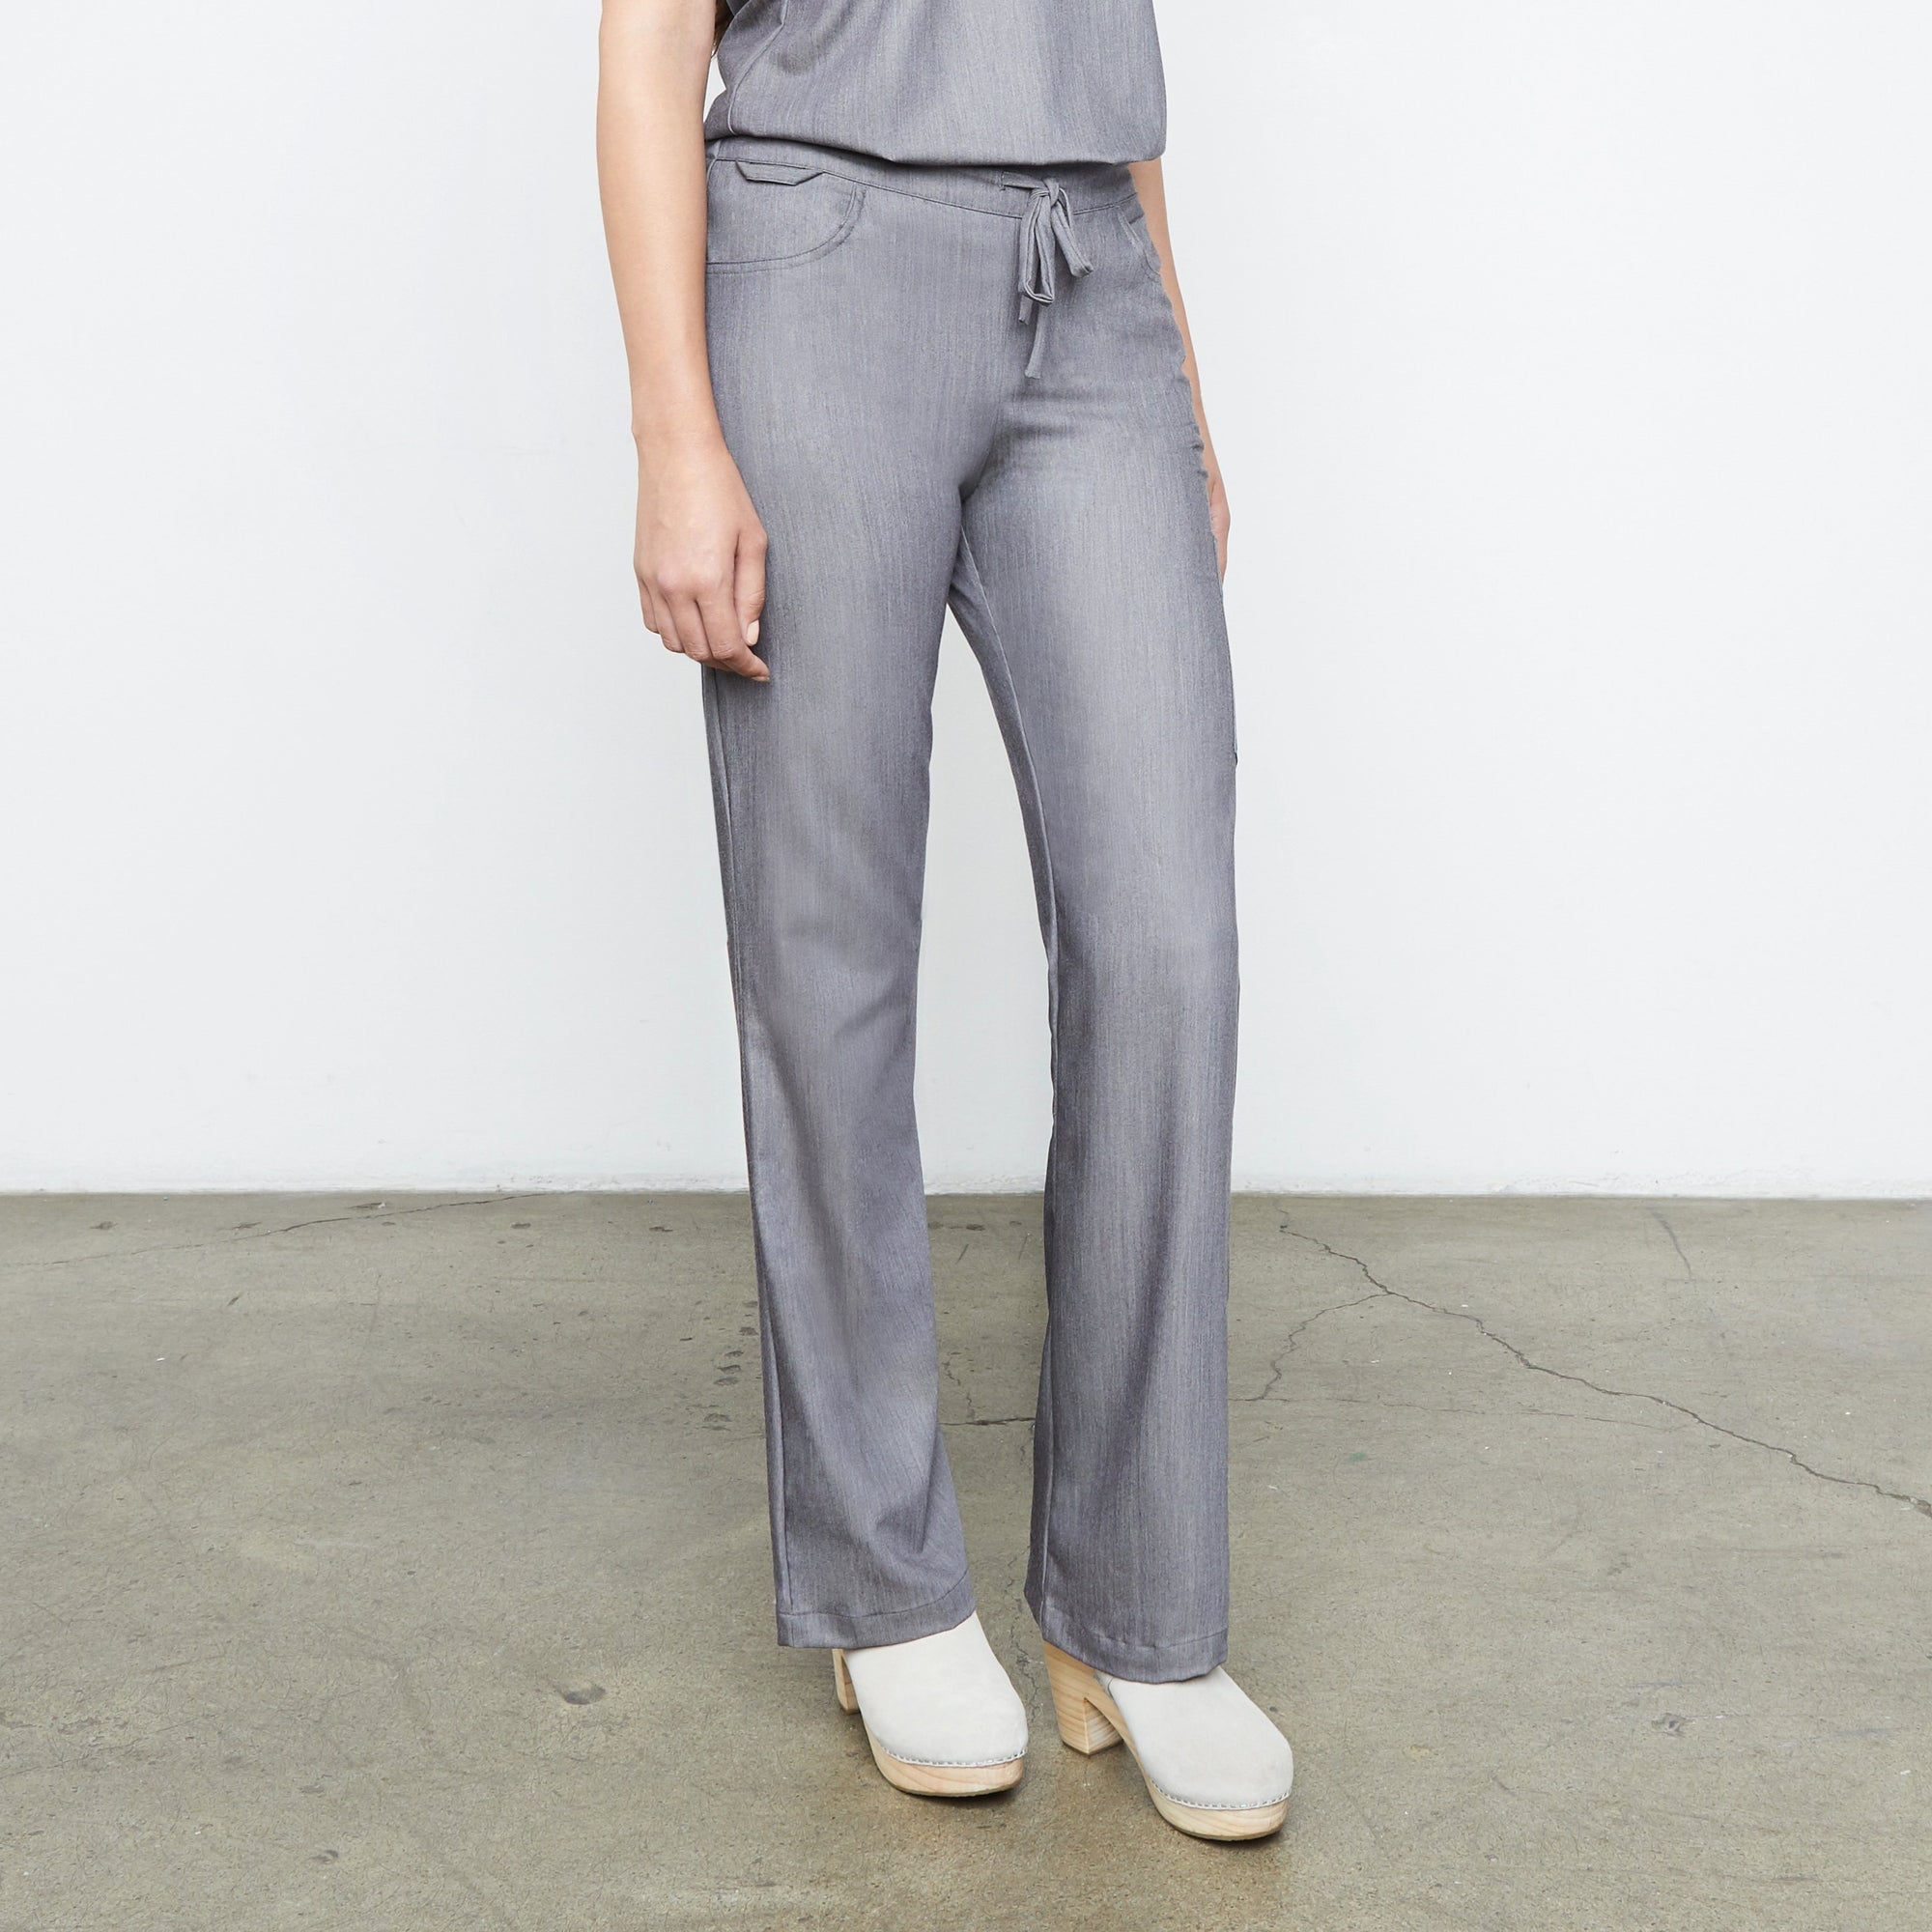 Maverick Pant (Granite Smoothie) | Fabled fashion scrub store has cute scrubs for sale, including dressy scrub pants and chic scrub pants. Now in gray, tall!